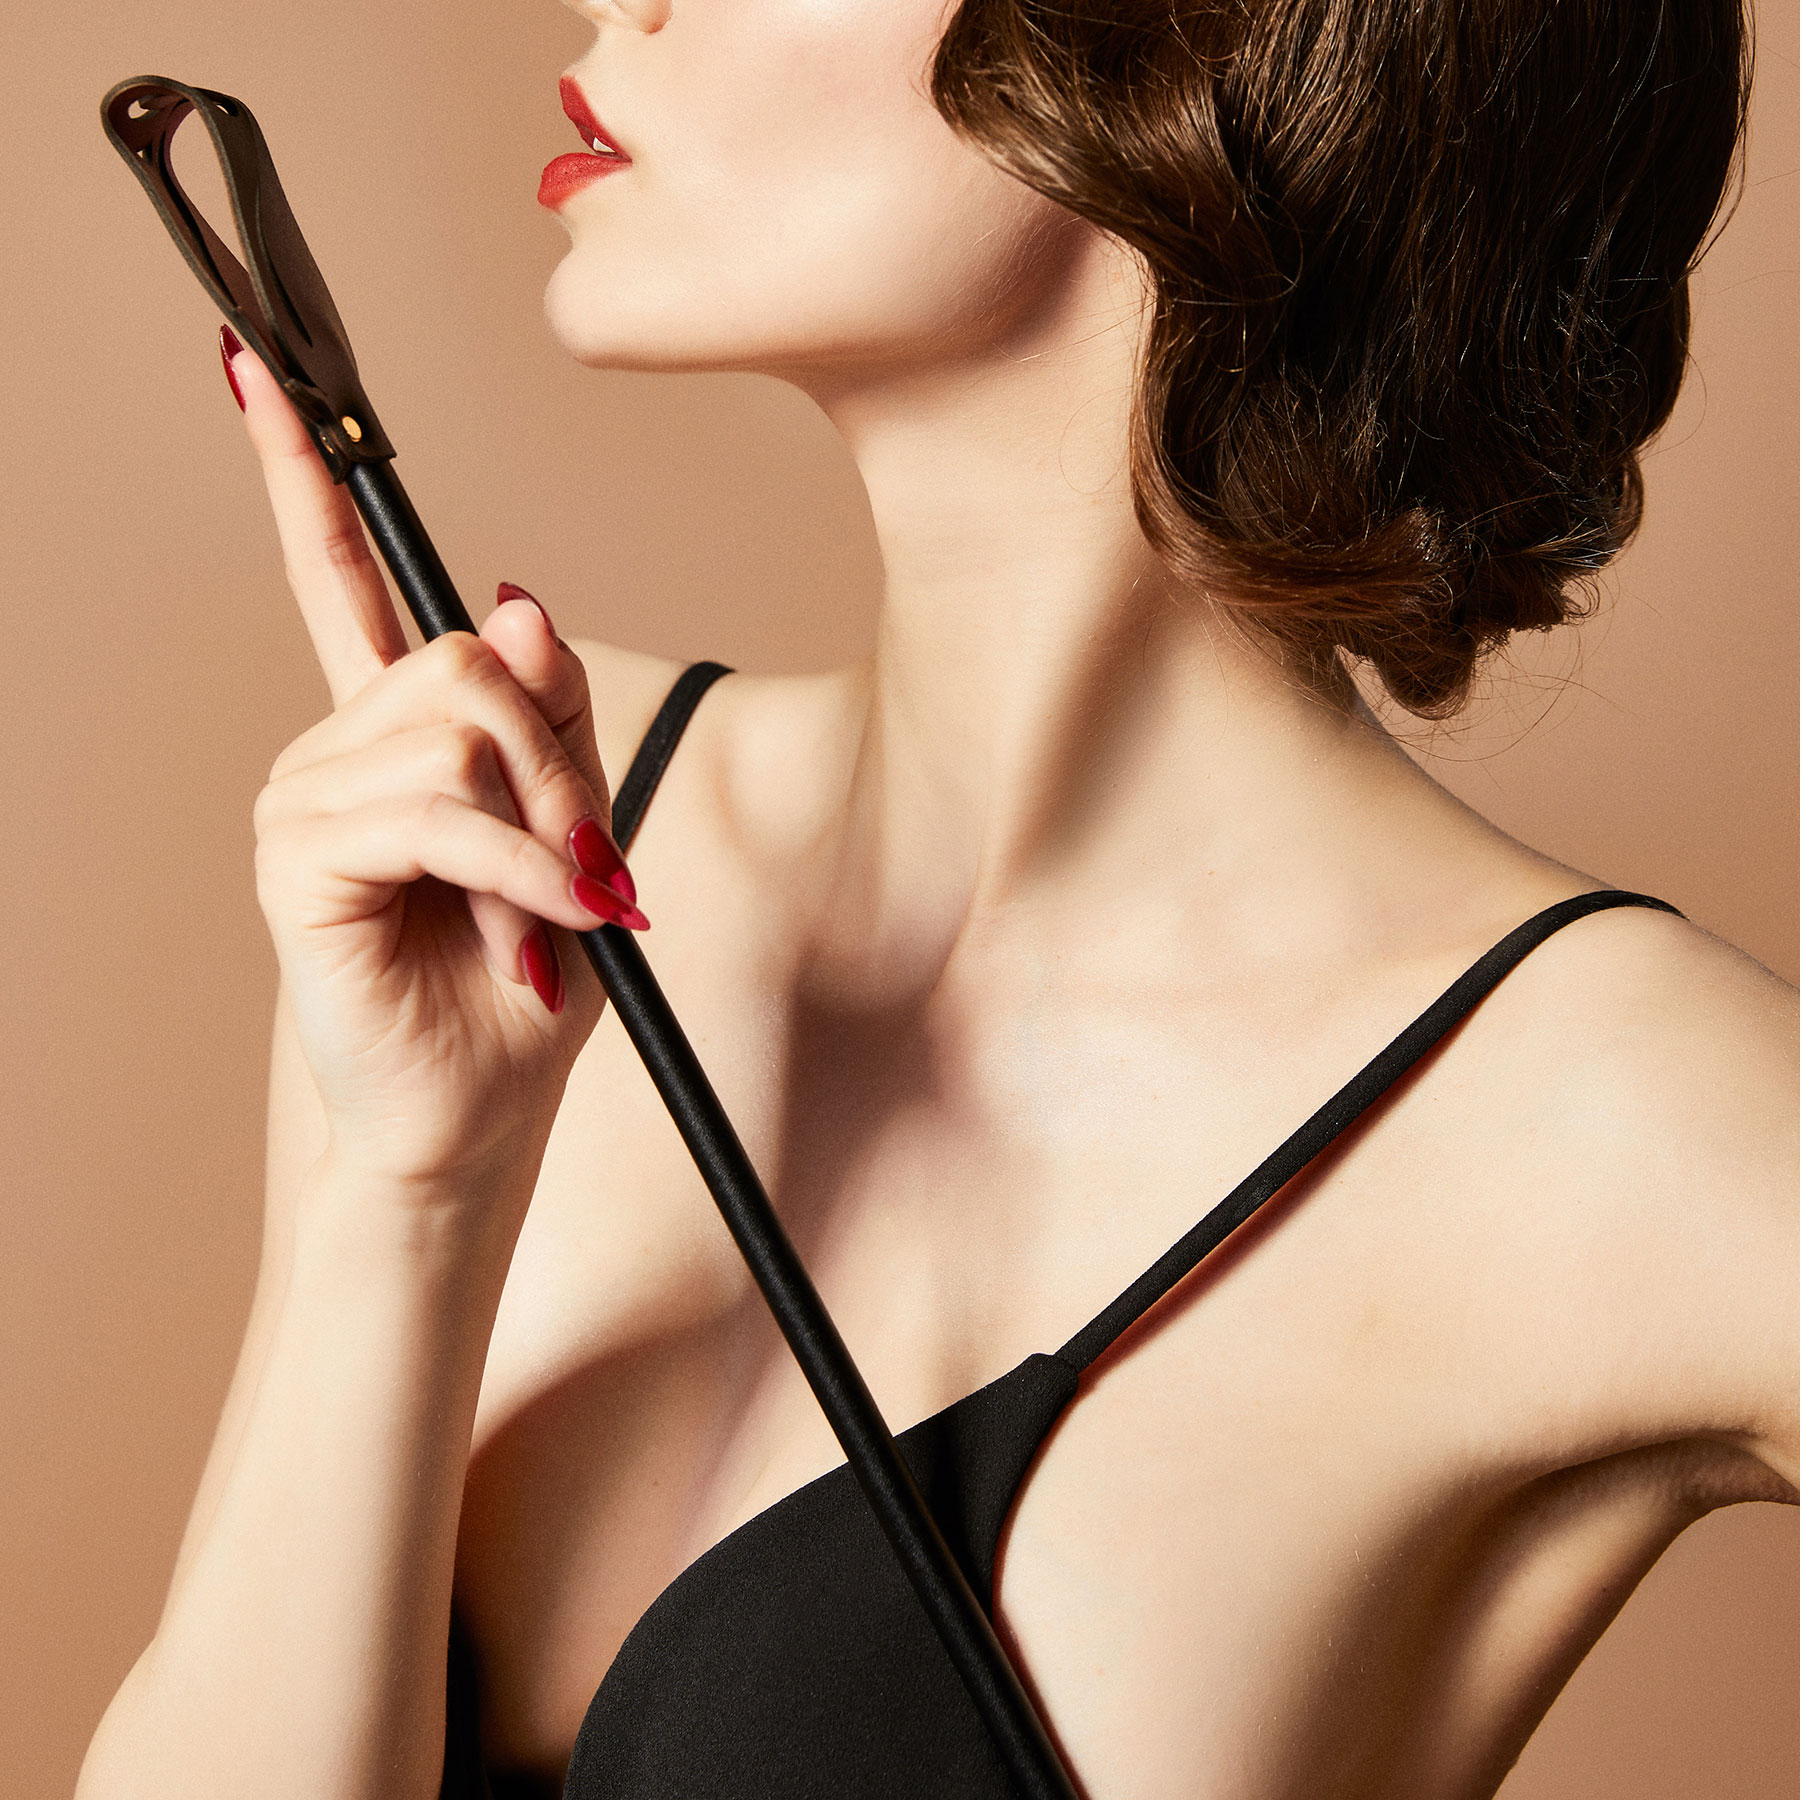 ZALO & UPKO Doll Designer Collection Leather Rose Riding Crop Displayed With Model